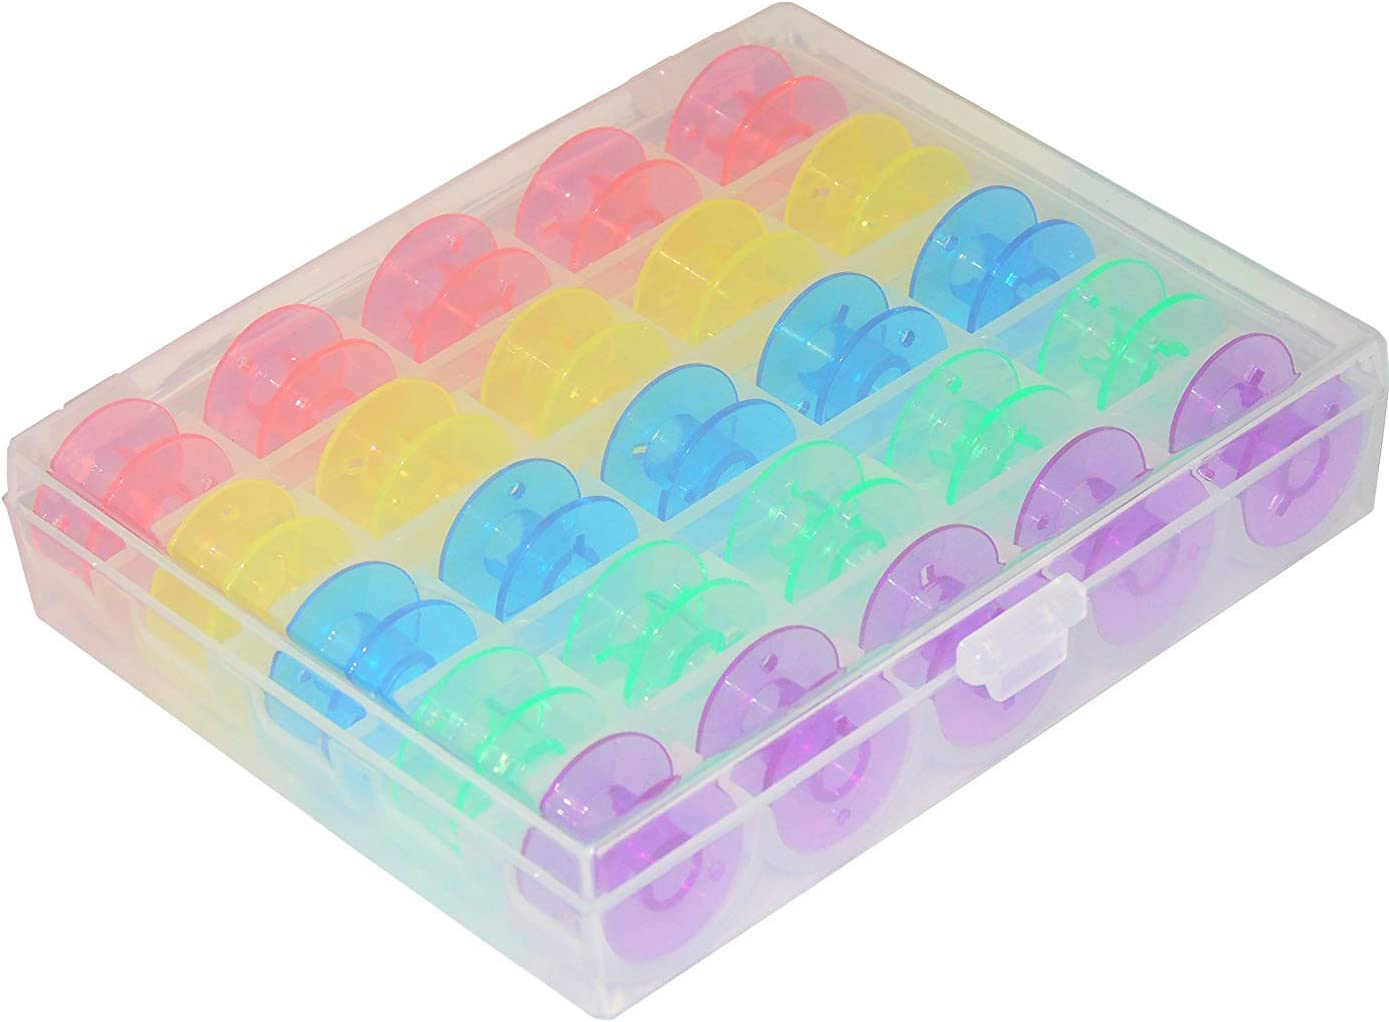 SimSel Colorful Sewing and Embroidery Bobbins SA156 for Select Brother Sewing Machines